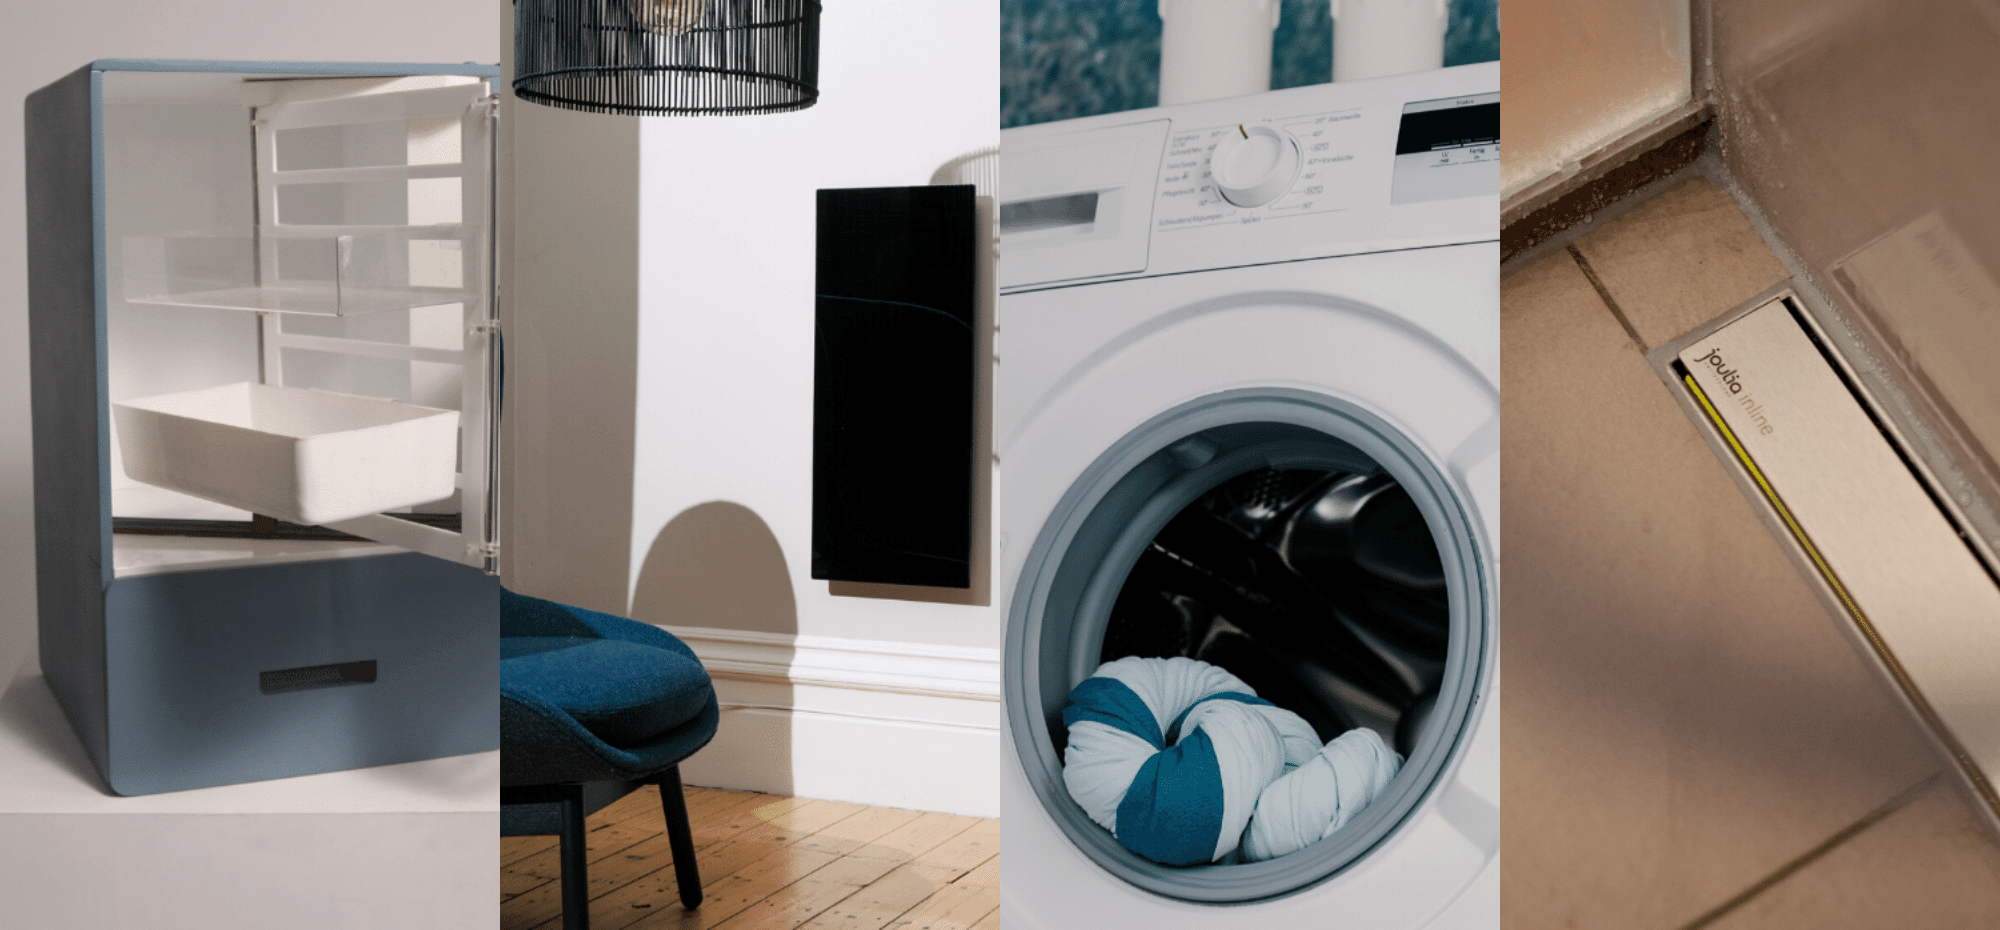 Top 7 Sustainable Home Innovations From 2020 - Springwise